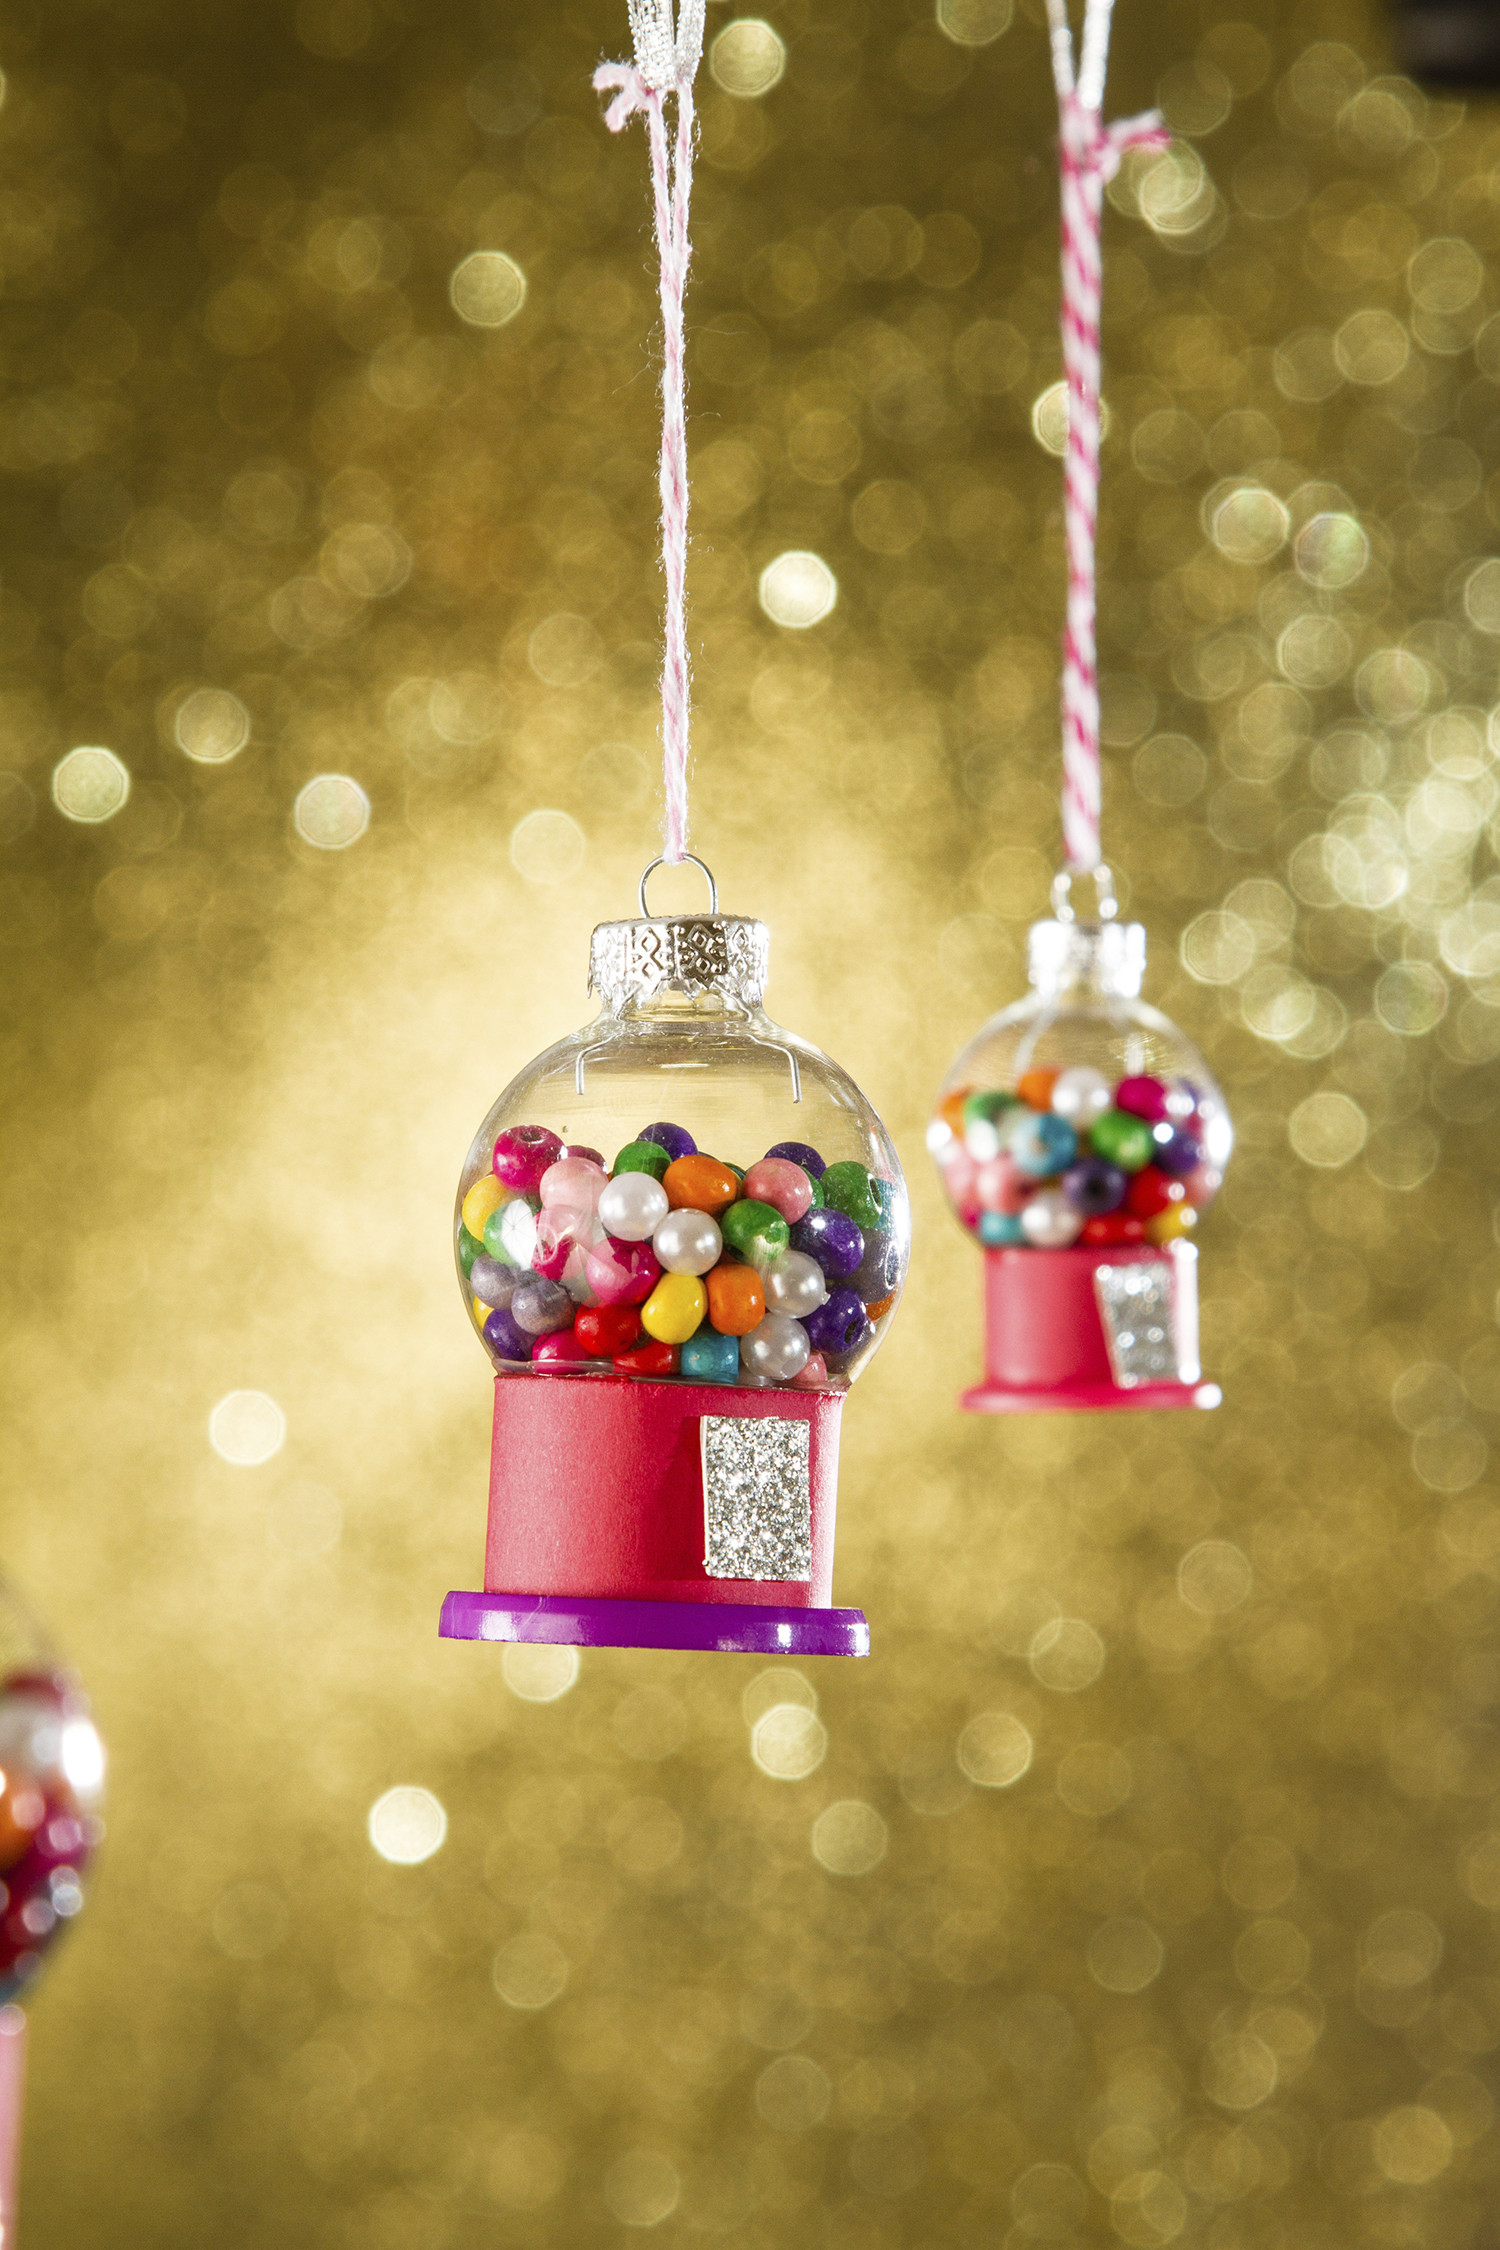 DIY Kids Christmas Craft  DIY Christmas Ornament Craft Ideas for Kids from Family